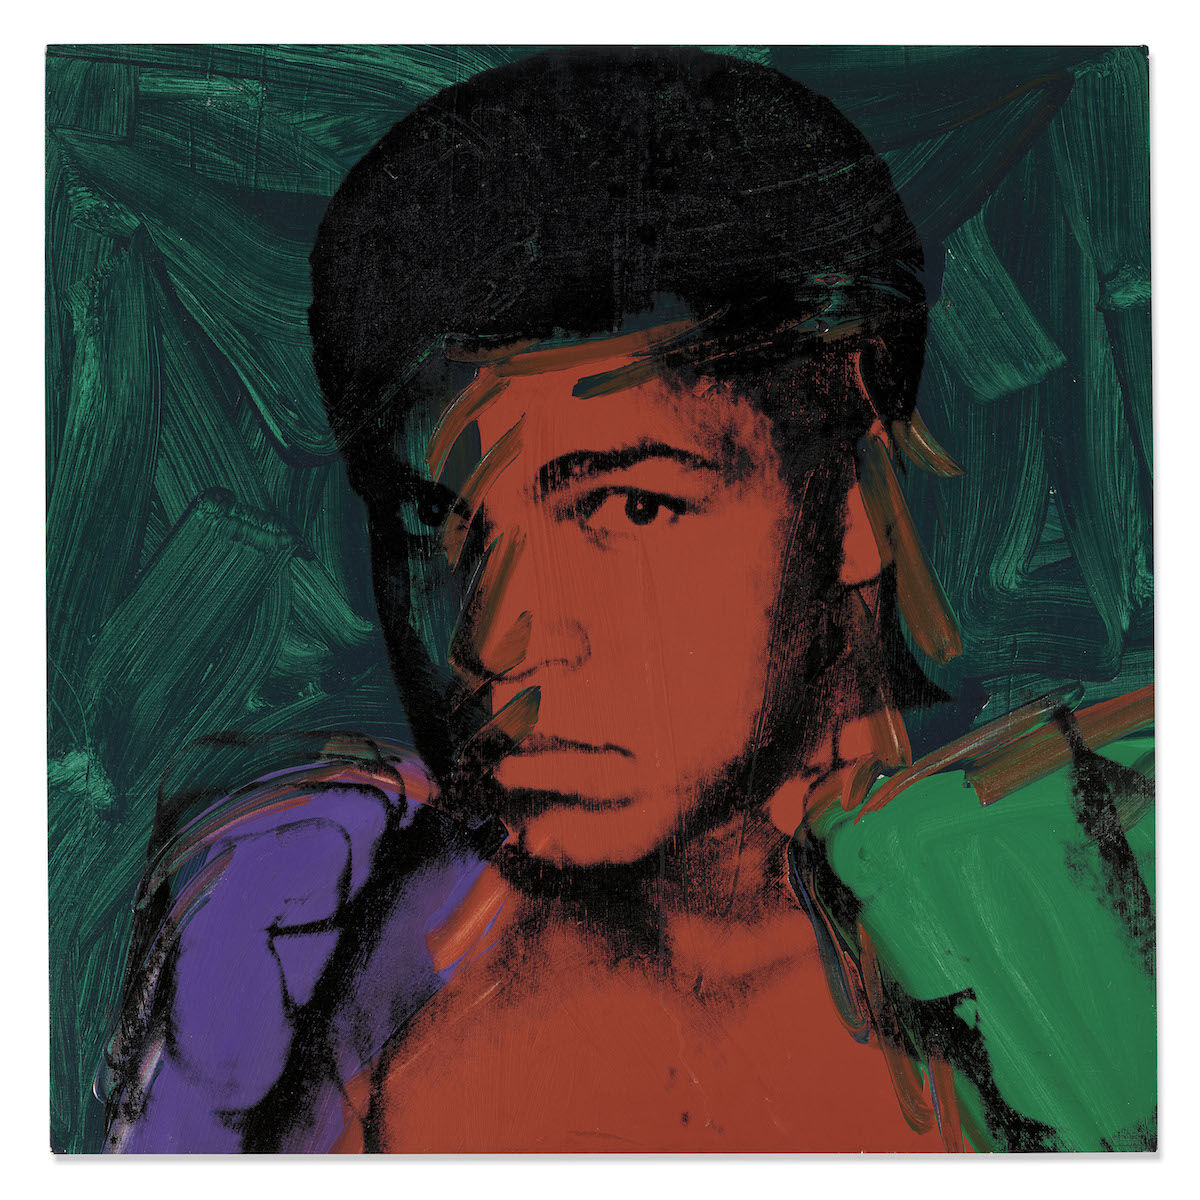 Andy Warhol, Muhammad Ali, 1977. Sold for £4.9 million ($6.3 million). © Christie's Images Limited 2020.